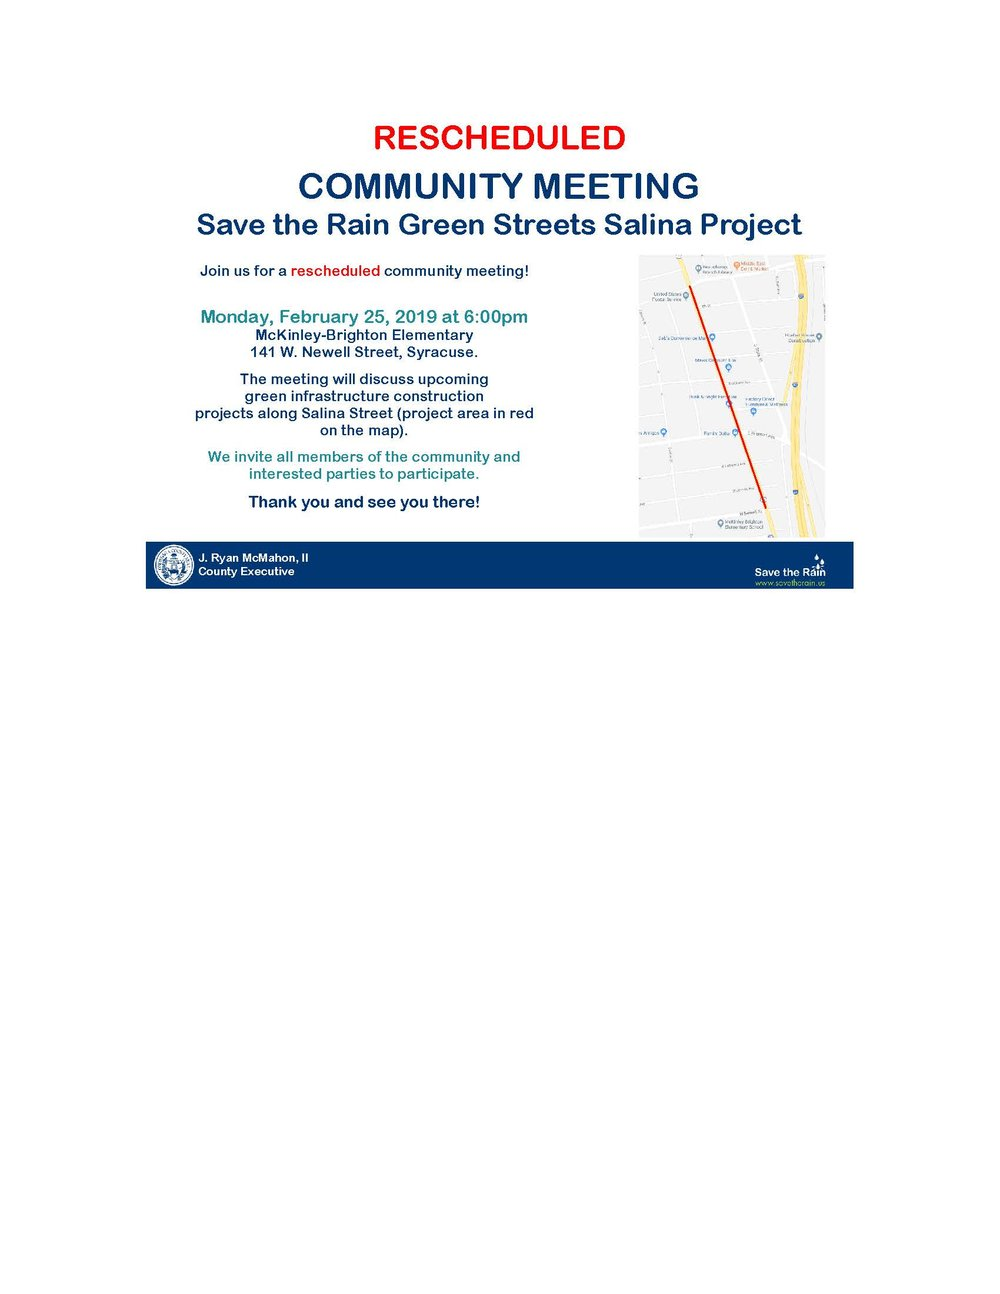 Salina Green Street Community Meeting 1 RESCHEDULE Notice.jpg